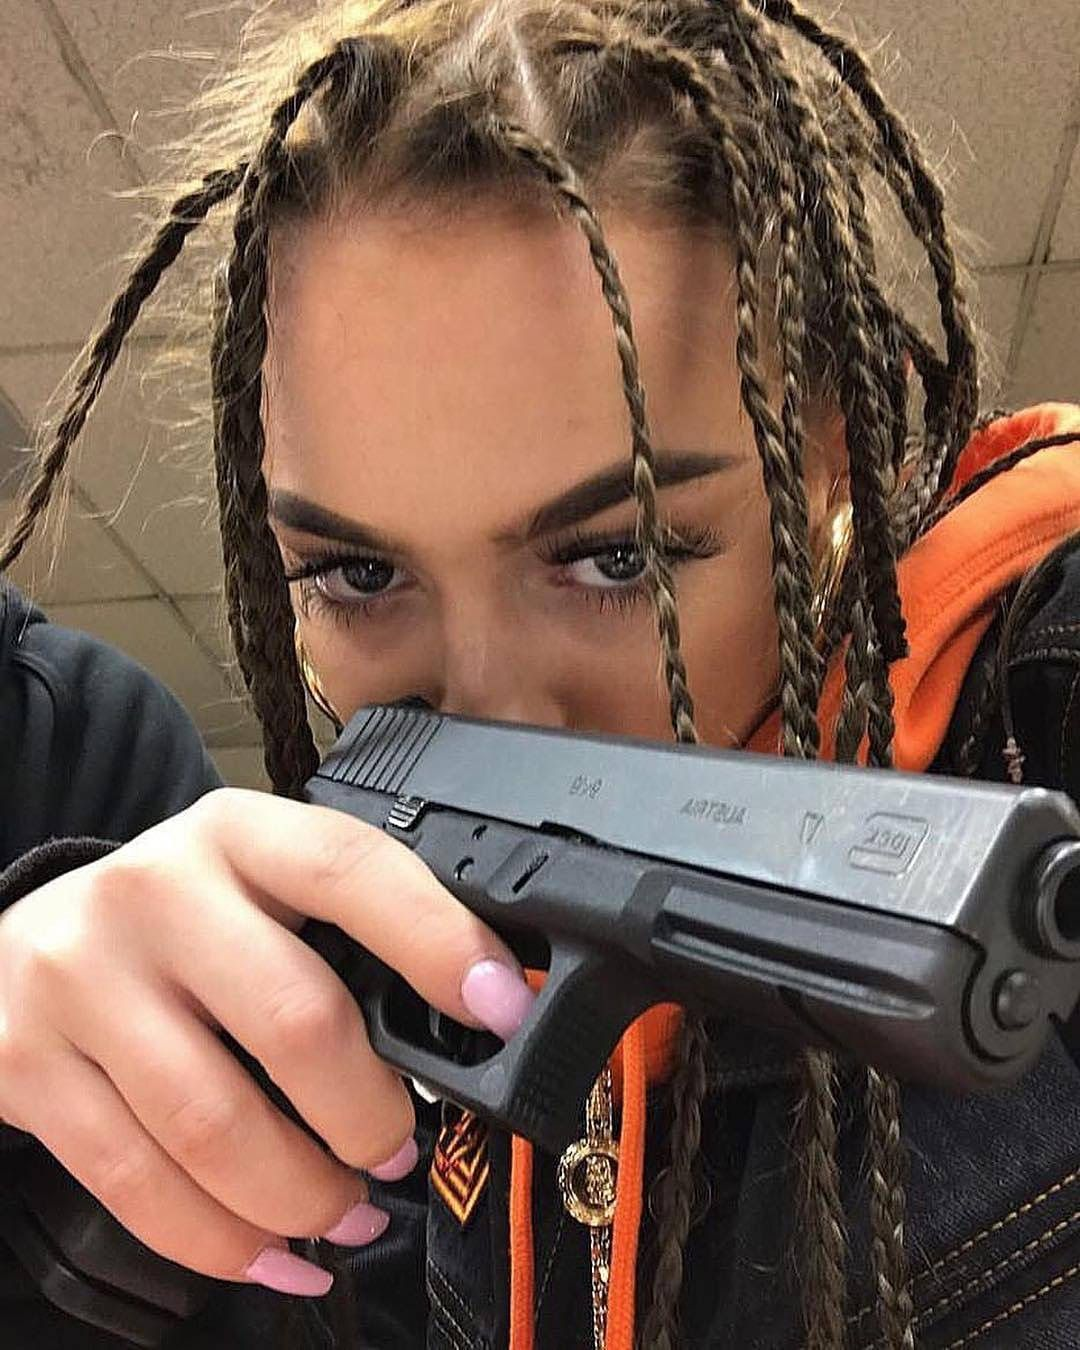 Pin by MeAlRo on Girls  Pinterest  Baddies Guns and